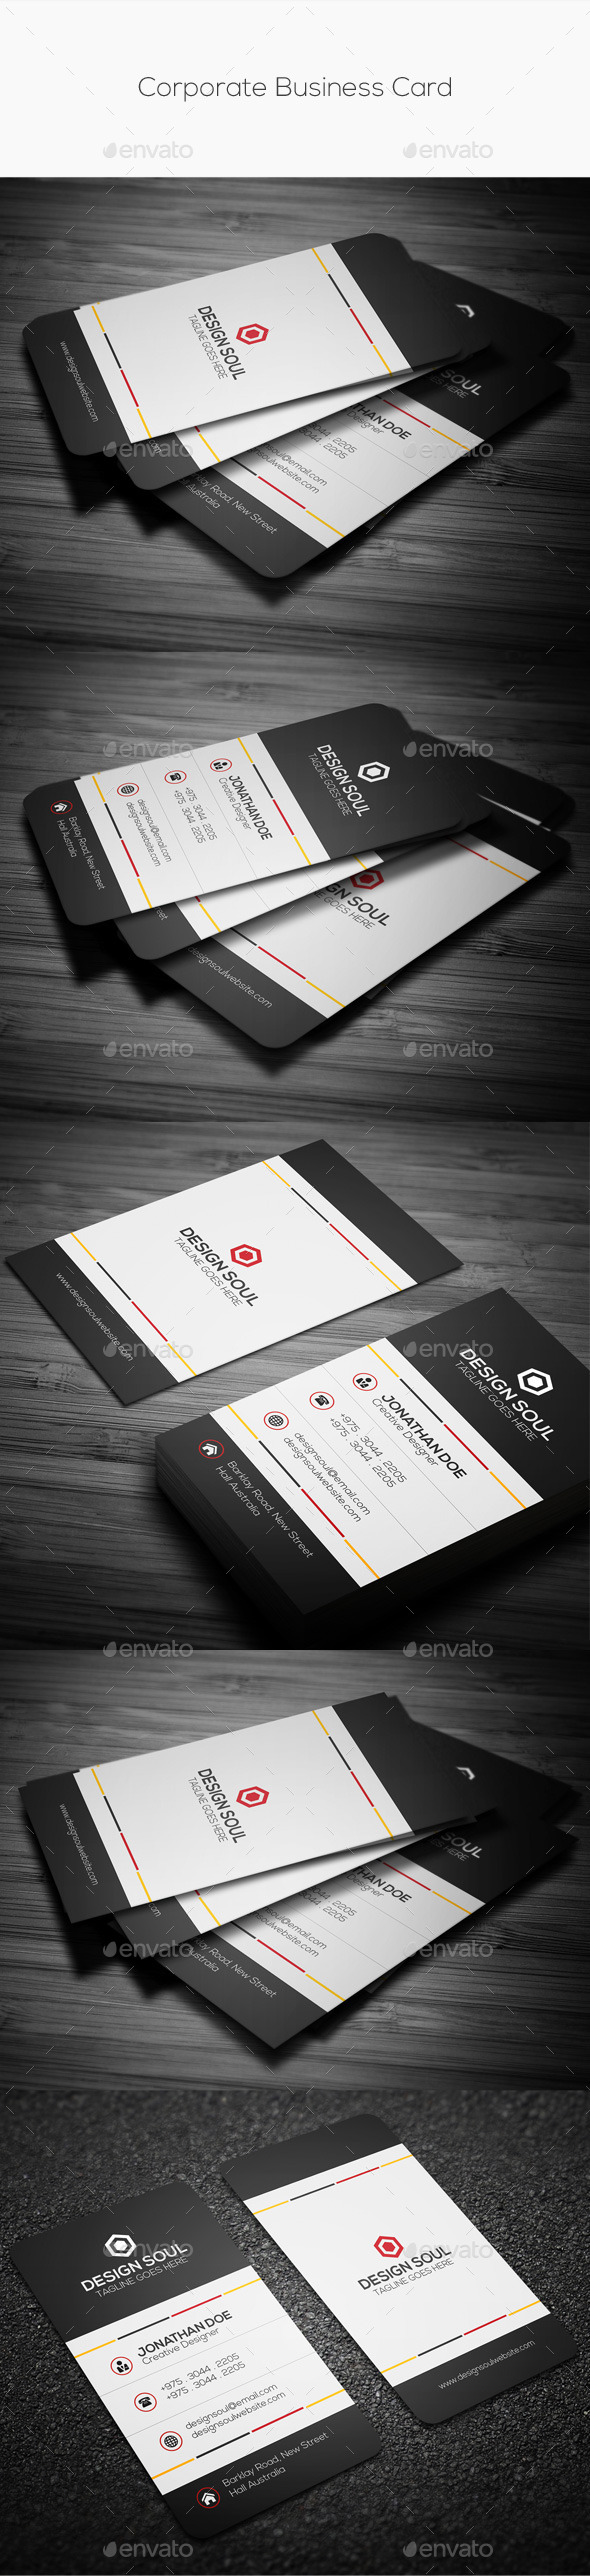 GraphicRiver Corporate Business Card 9999716